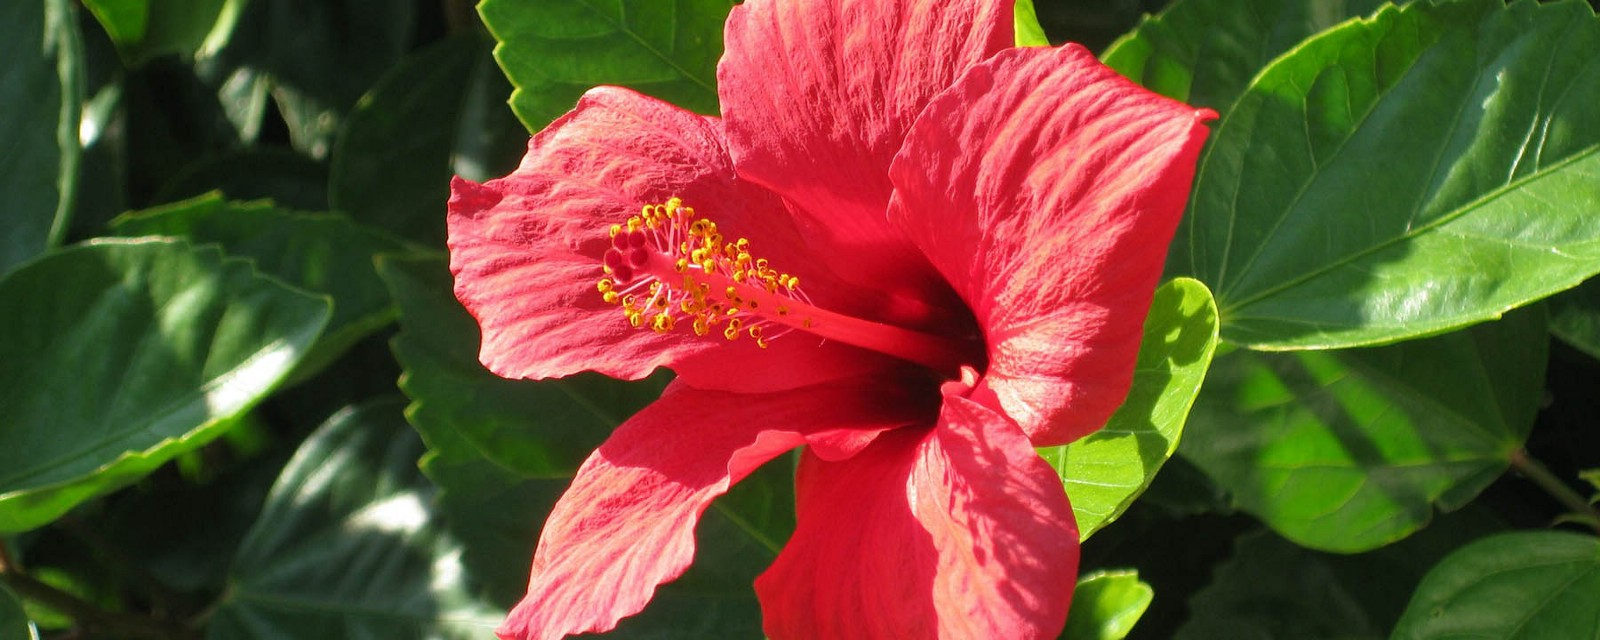 Hibiscus Tea Benefits Your Body Will Love Recipe Inside